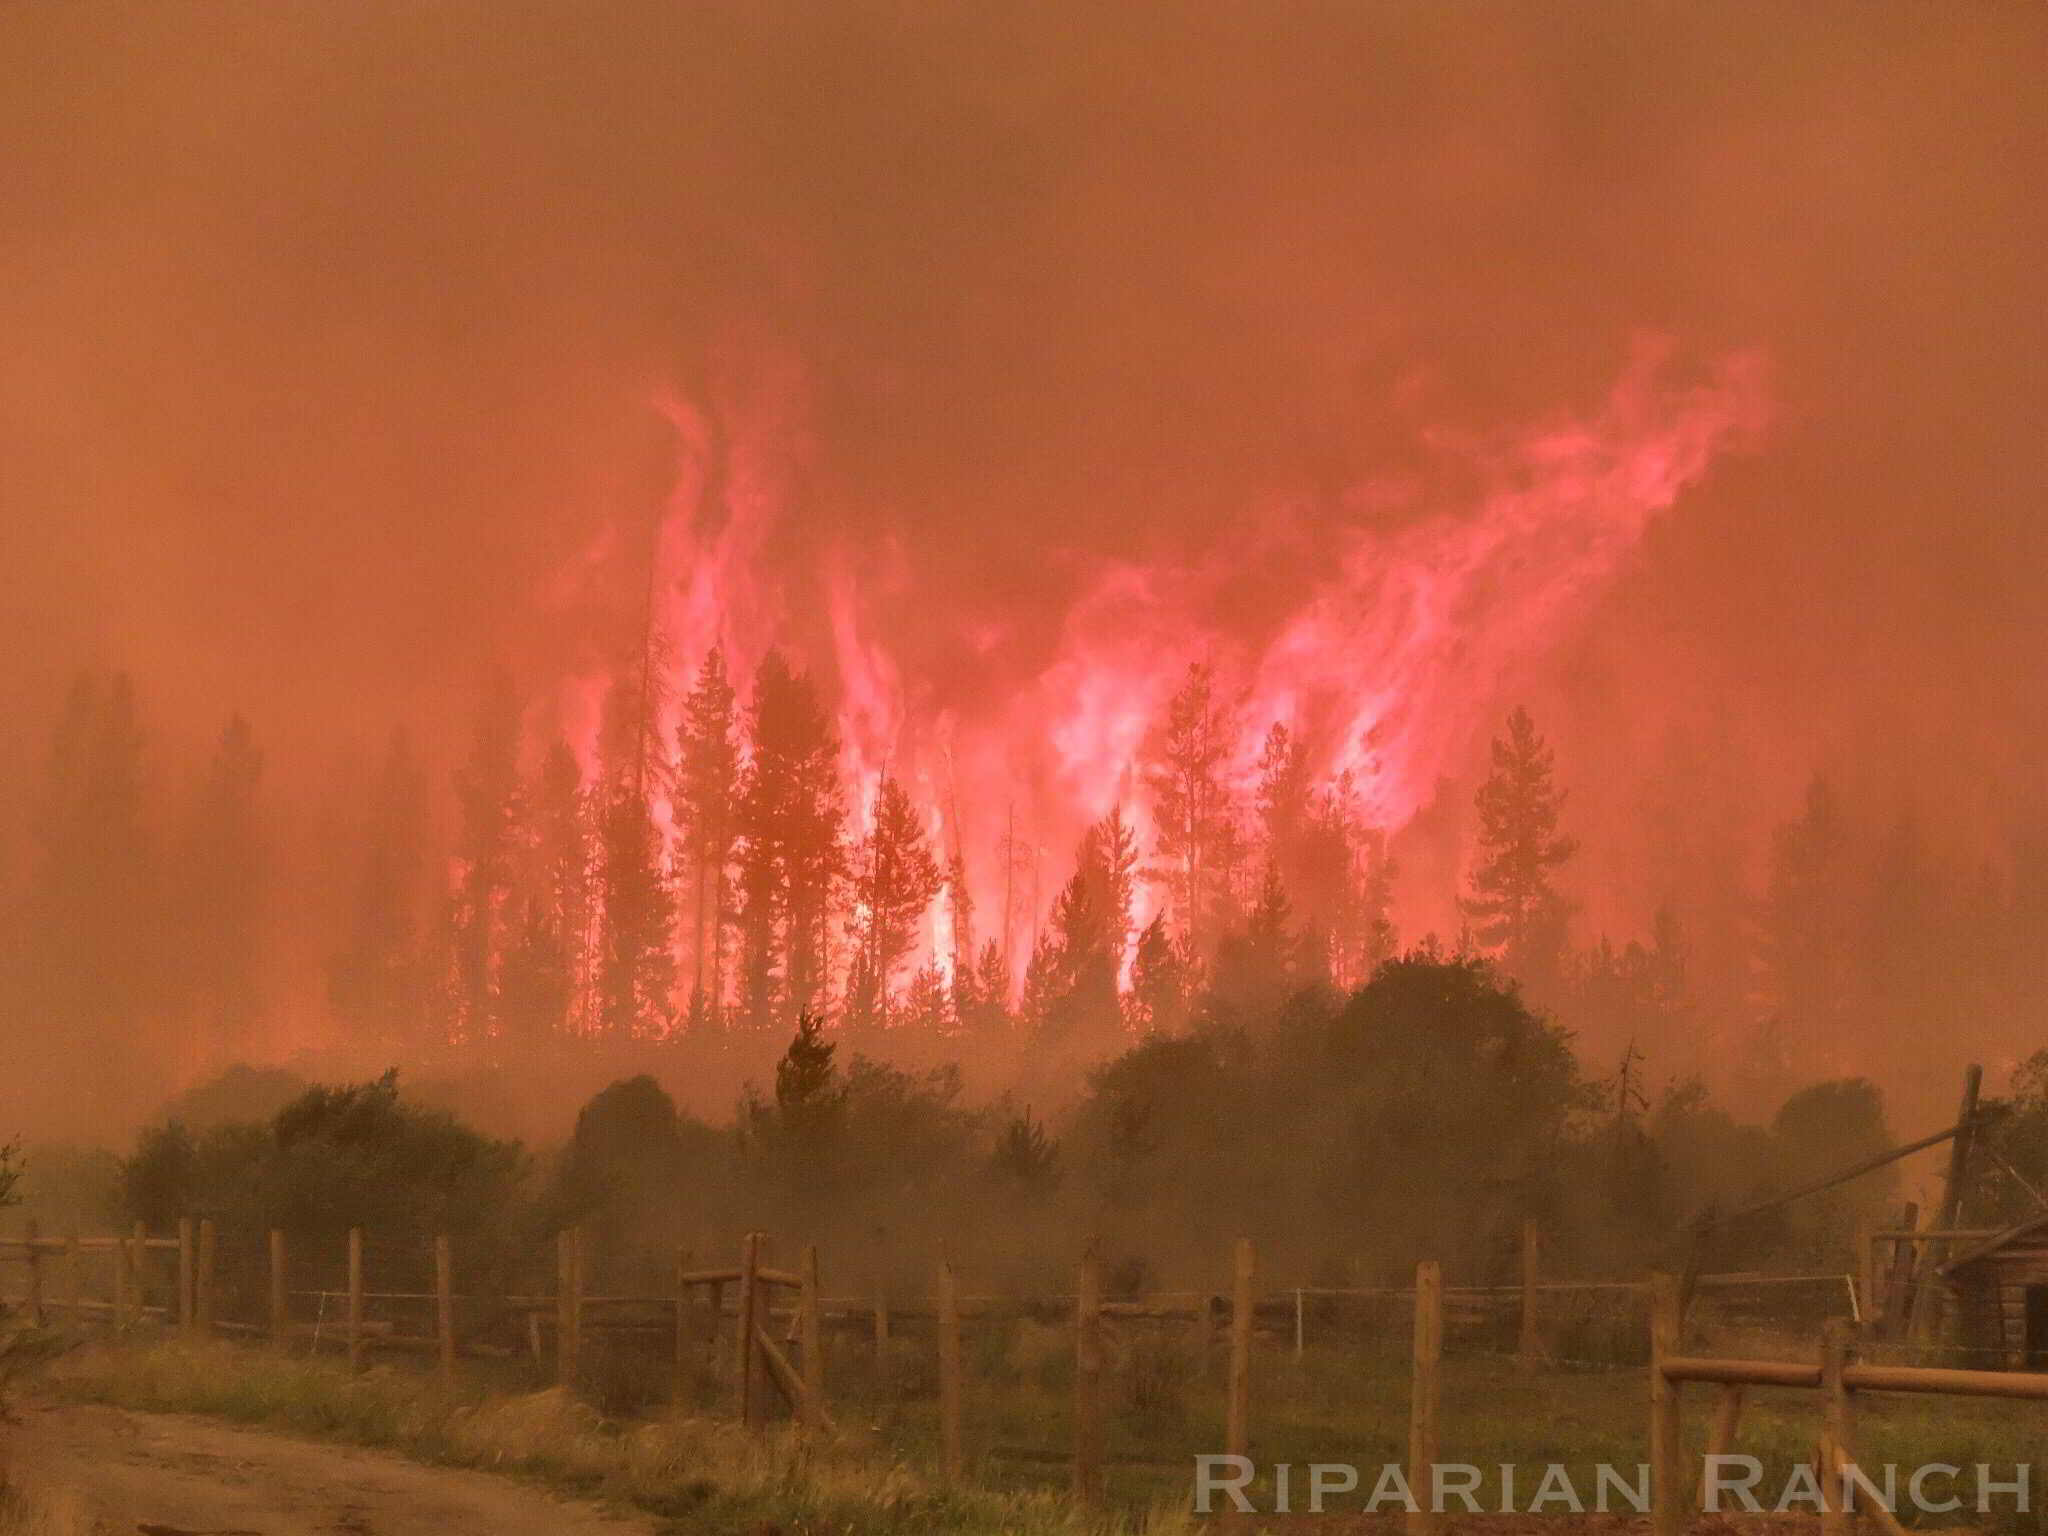 BC Wildfire at Riparian Ranch